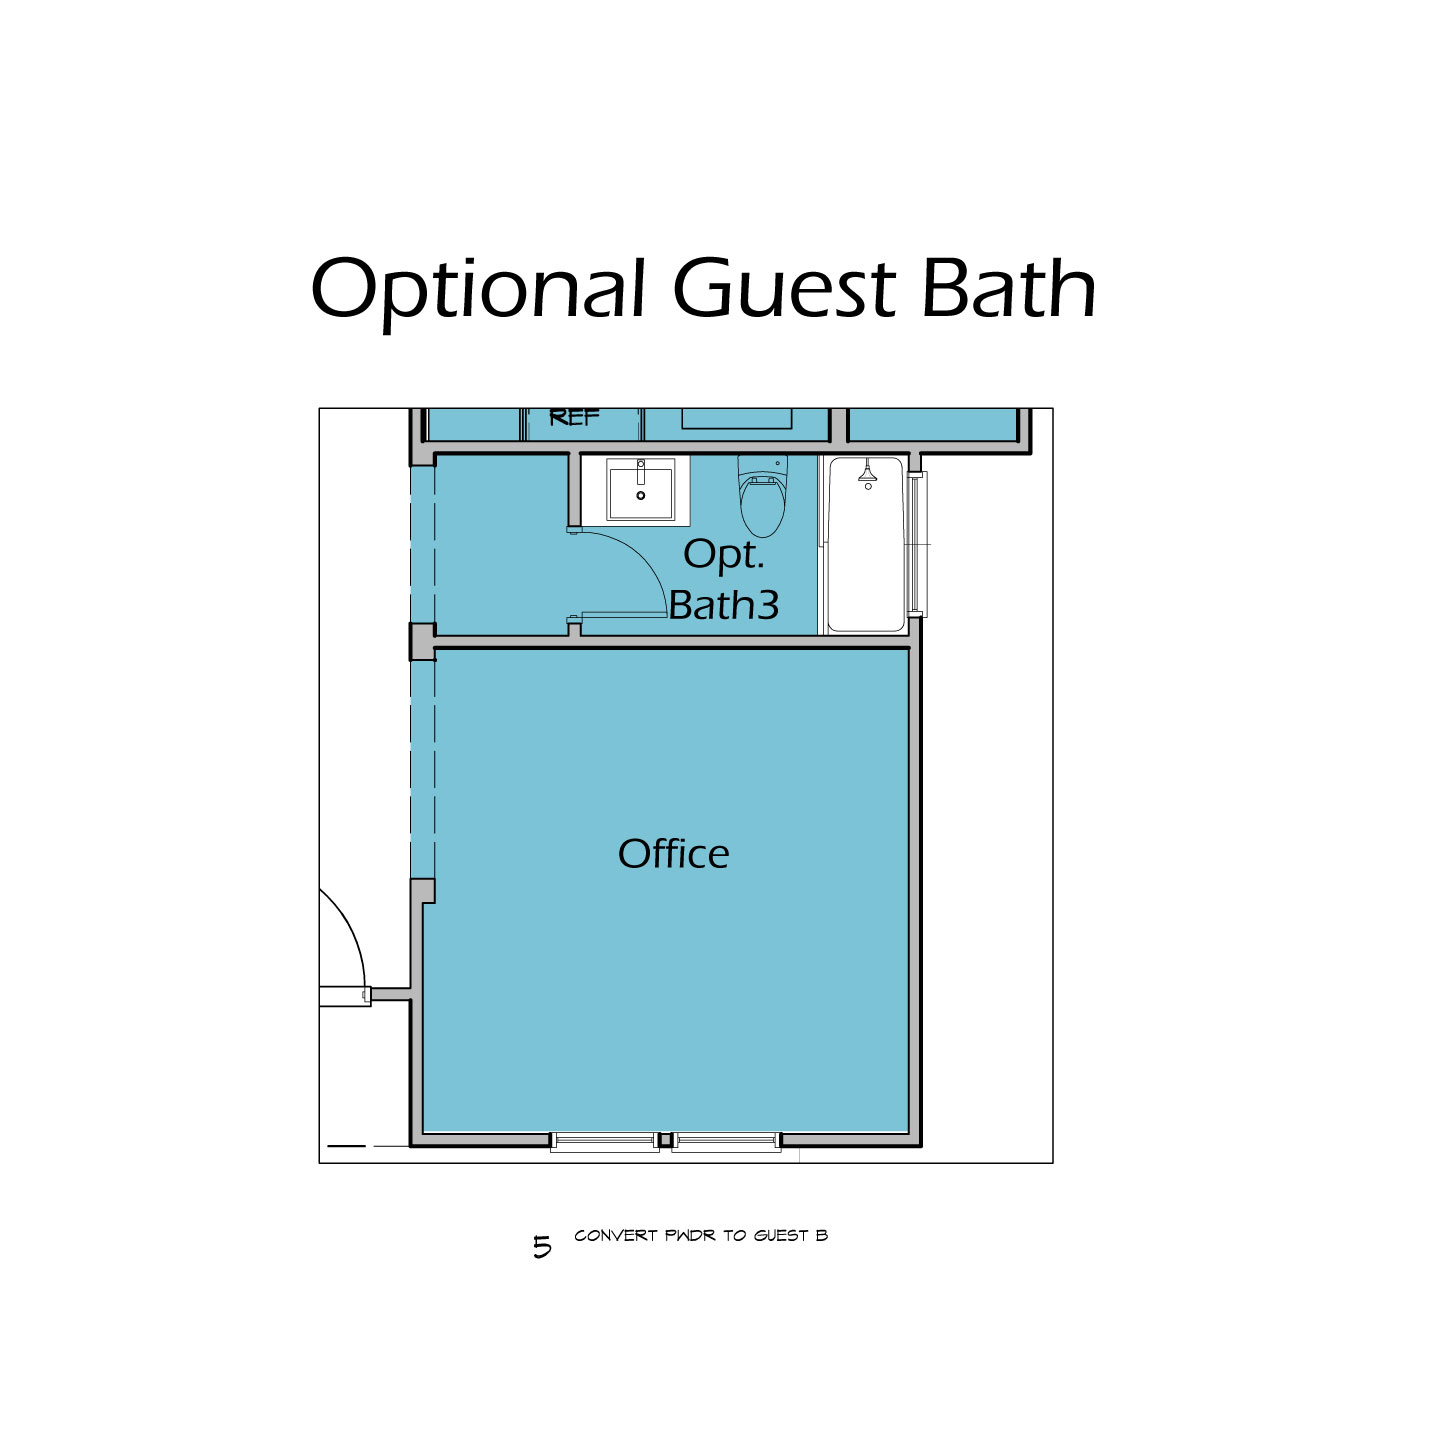 Heartalnd Plan T3 Optional Guest Bath